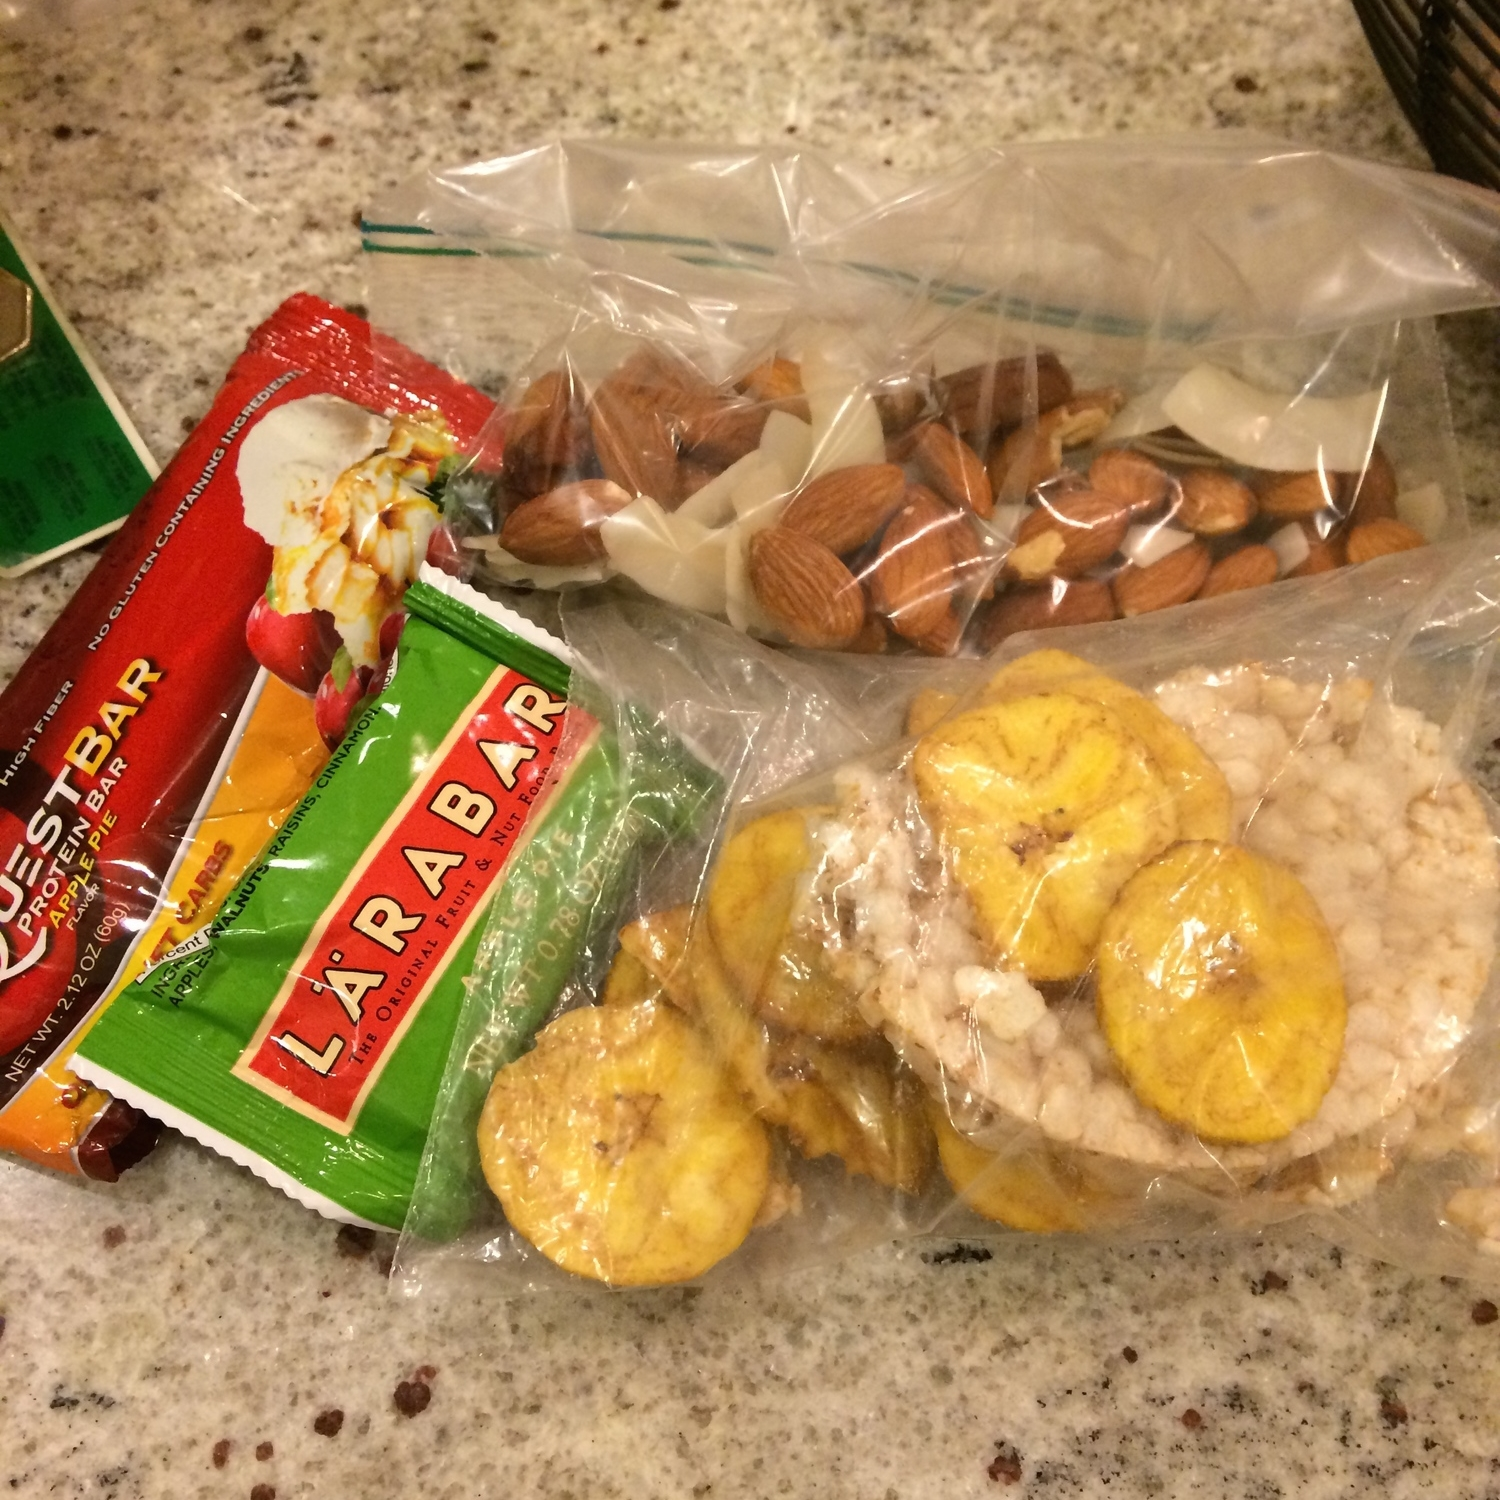 I prefer to overpack snacks so I have options based on my hunger level and I am prepared for whatever my day throws at me!